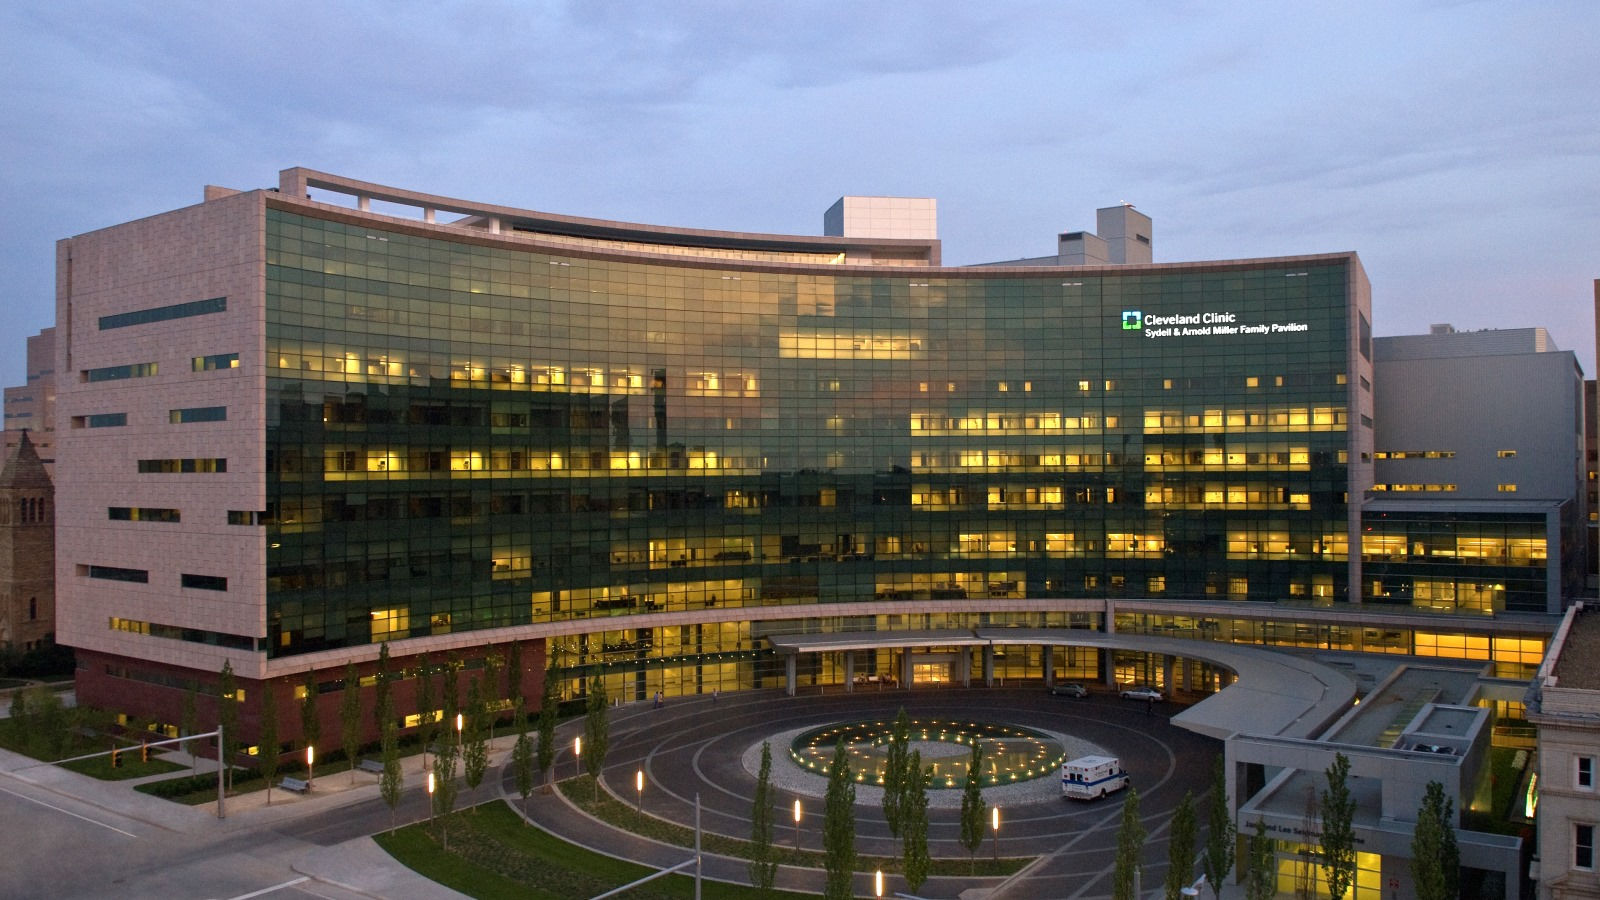 Things to do in Cleveland - Cleveland Clinic